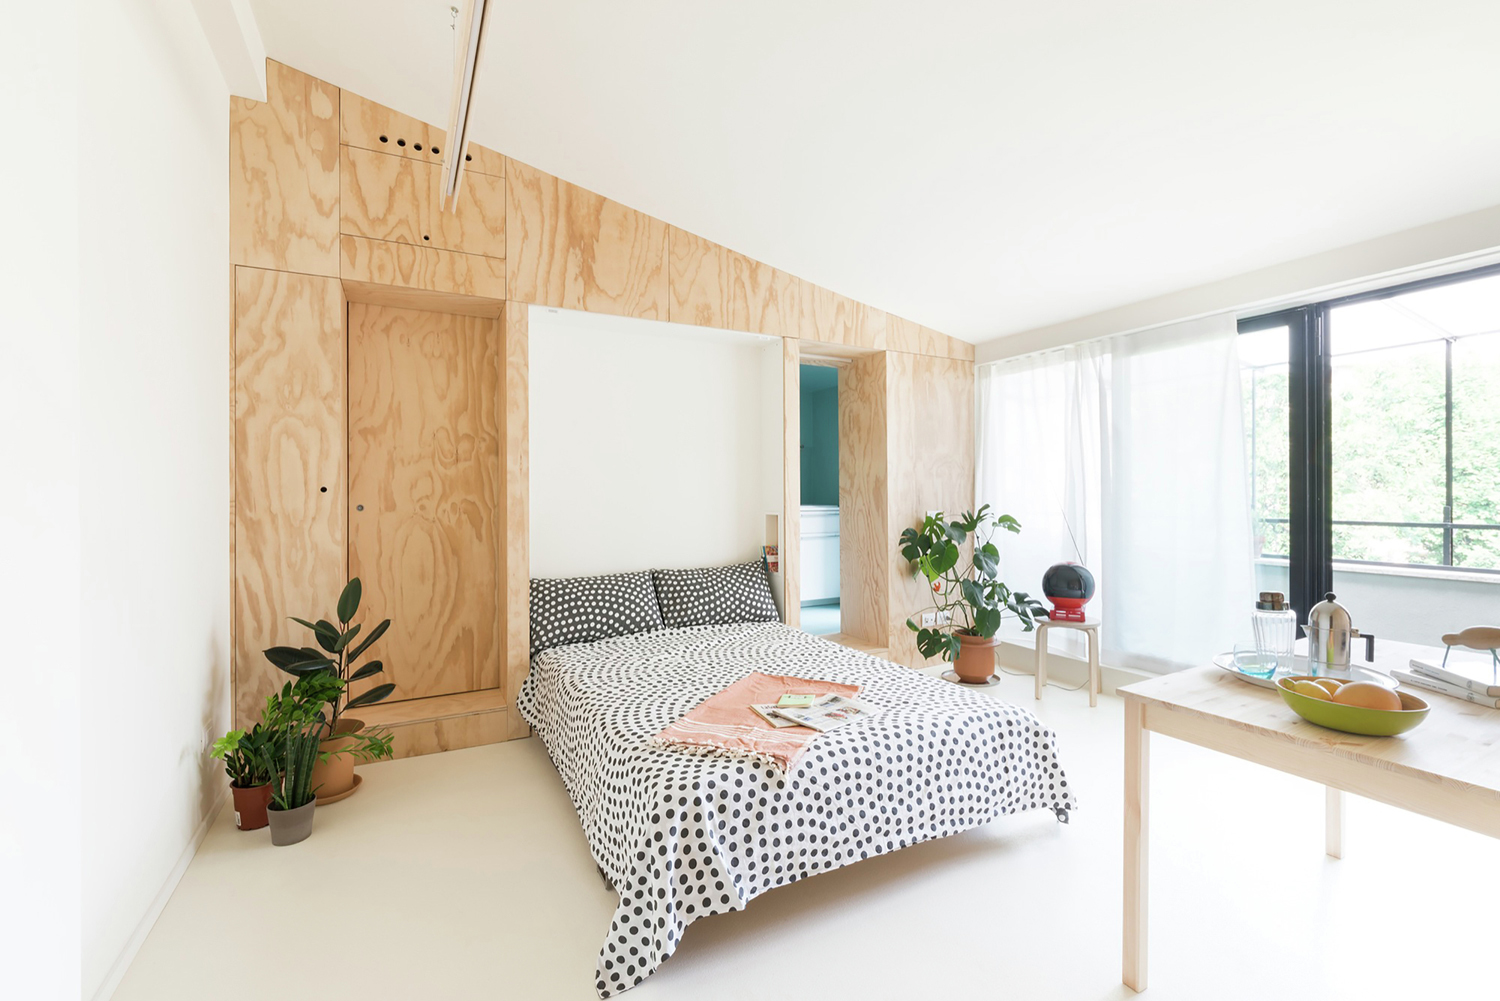 300 Square Foot Tiny Studio Apartment With Flexible Living Space